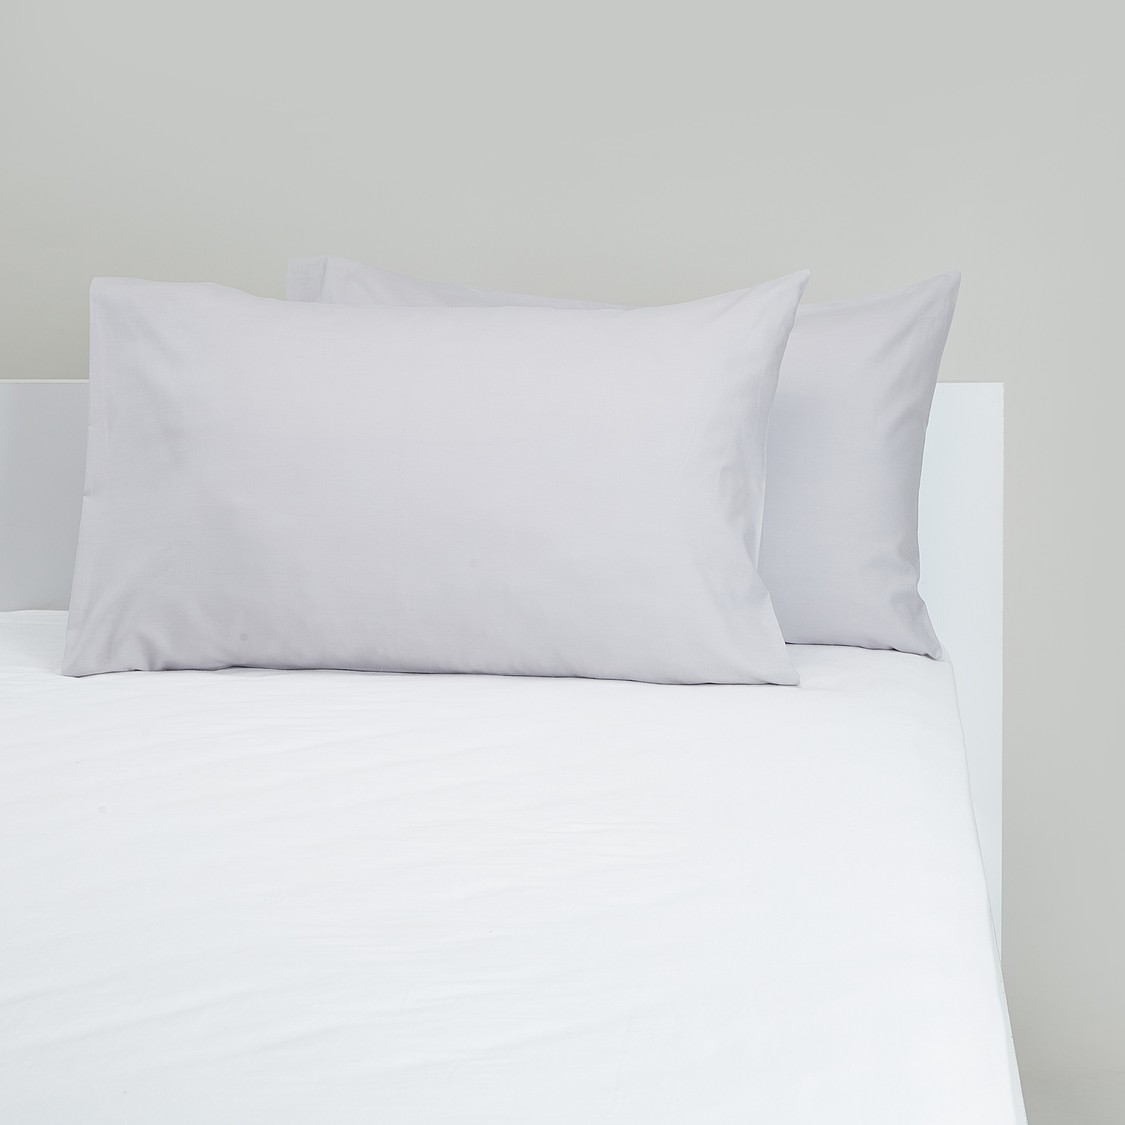 Set of 2 - Solid Pillowcases - 75x50 cms